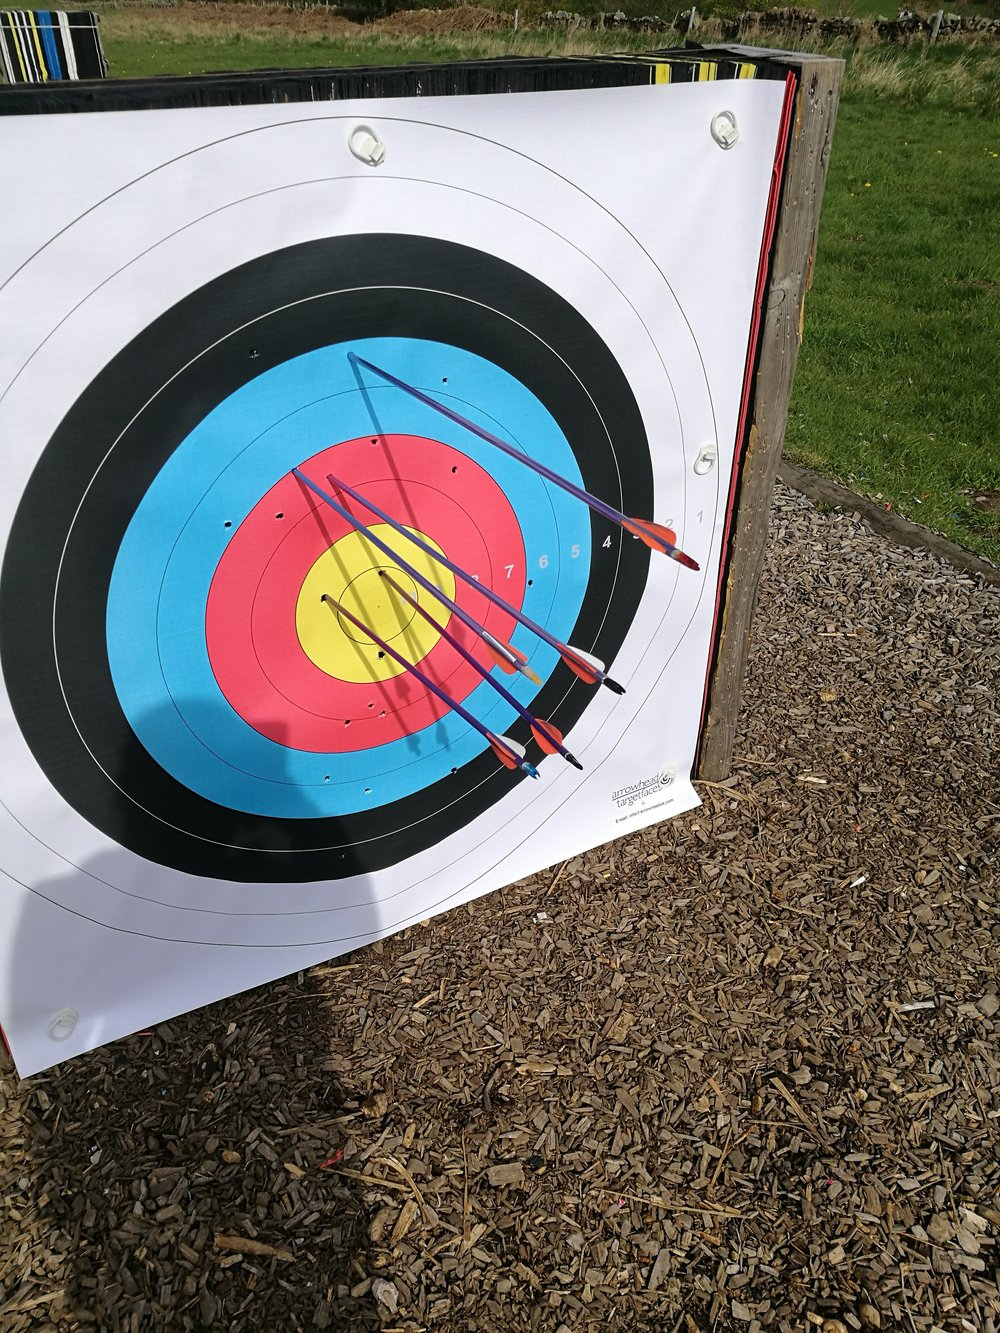 My second go at archery. Turns out I'm quite good!